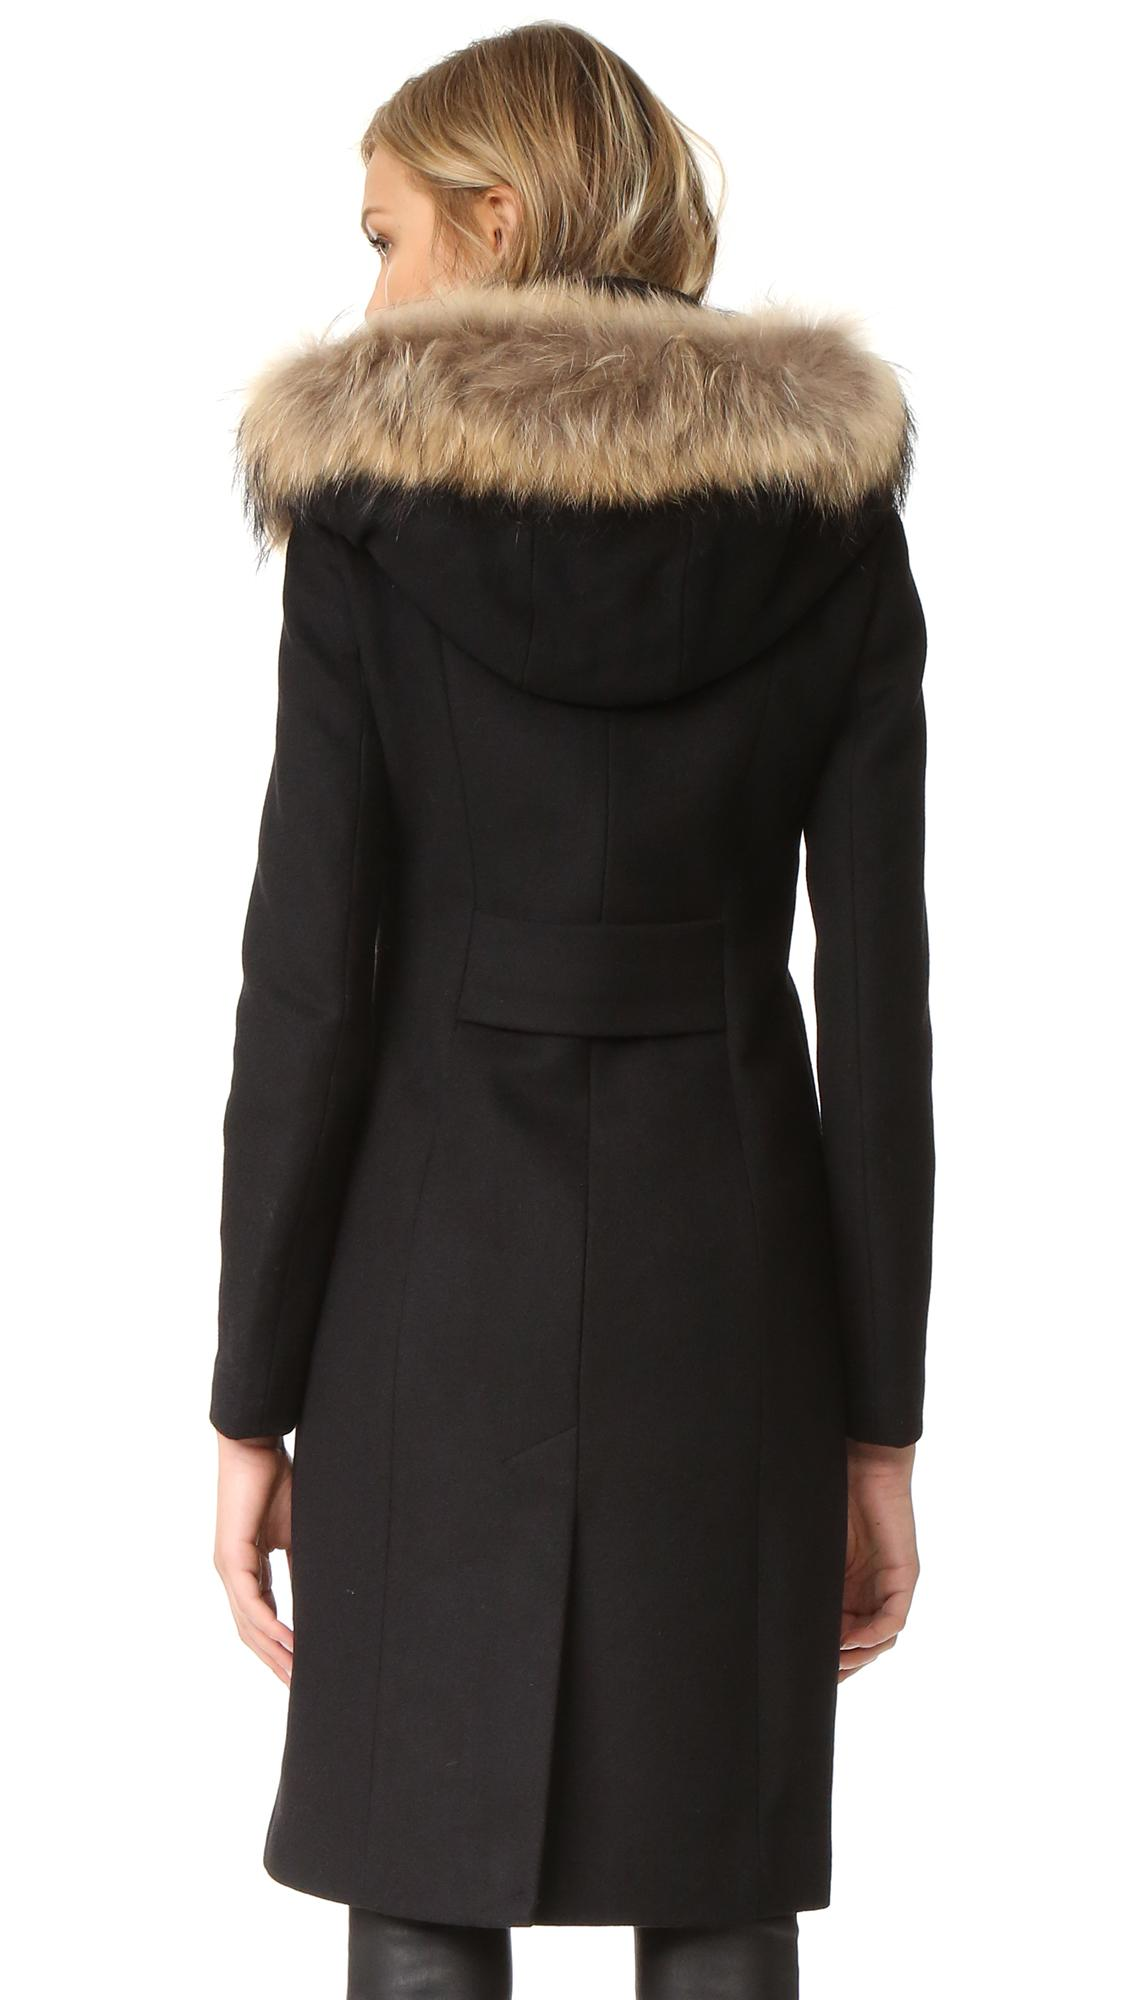 Mackage Mila Coat In Black Lyst